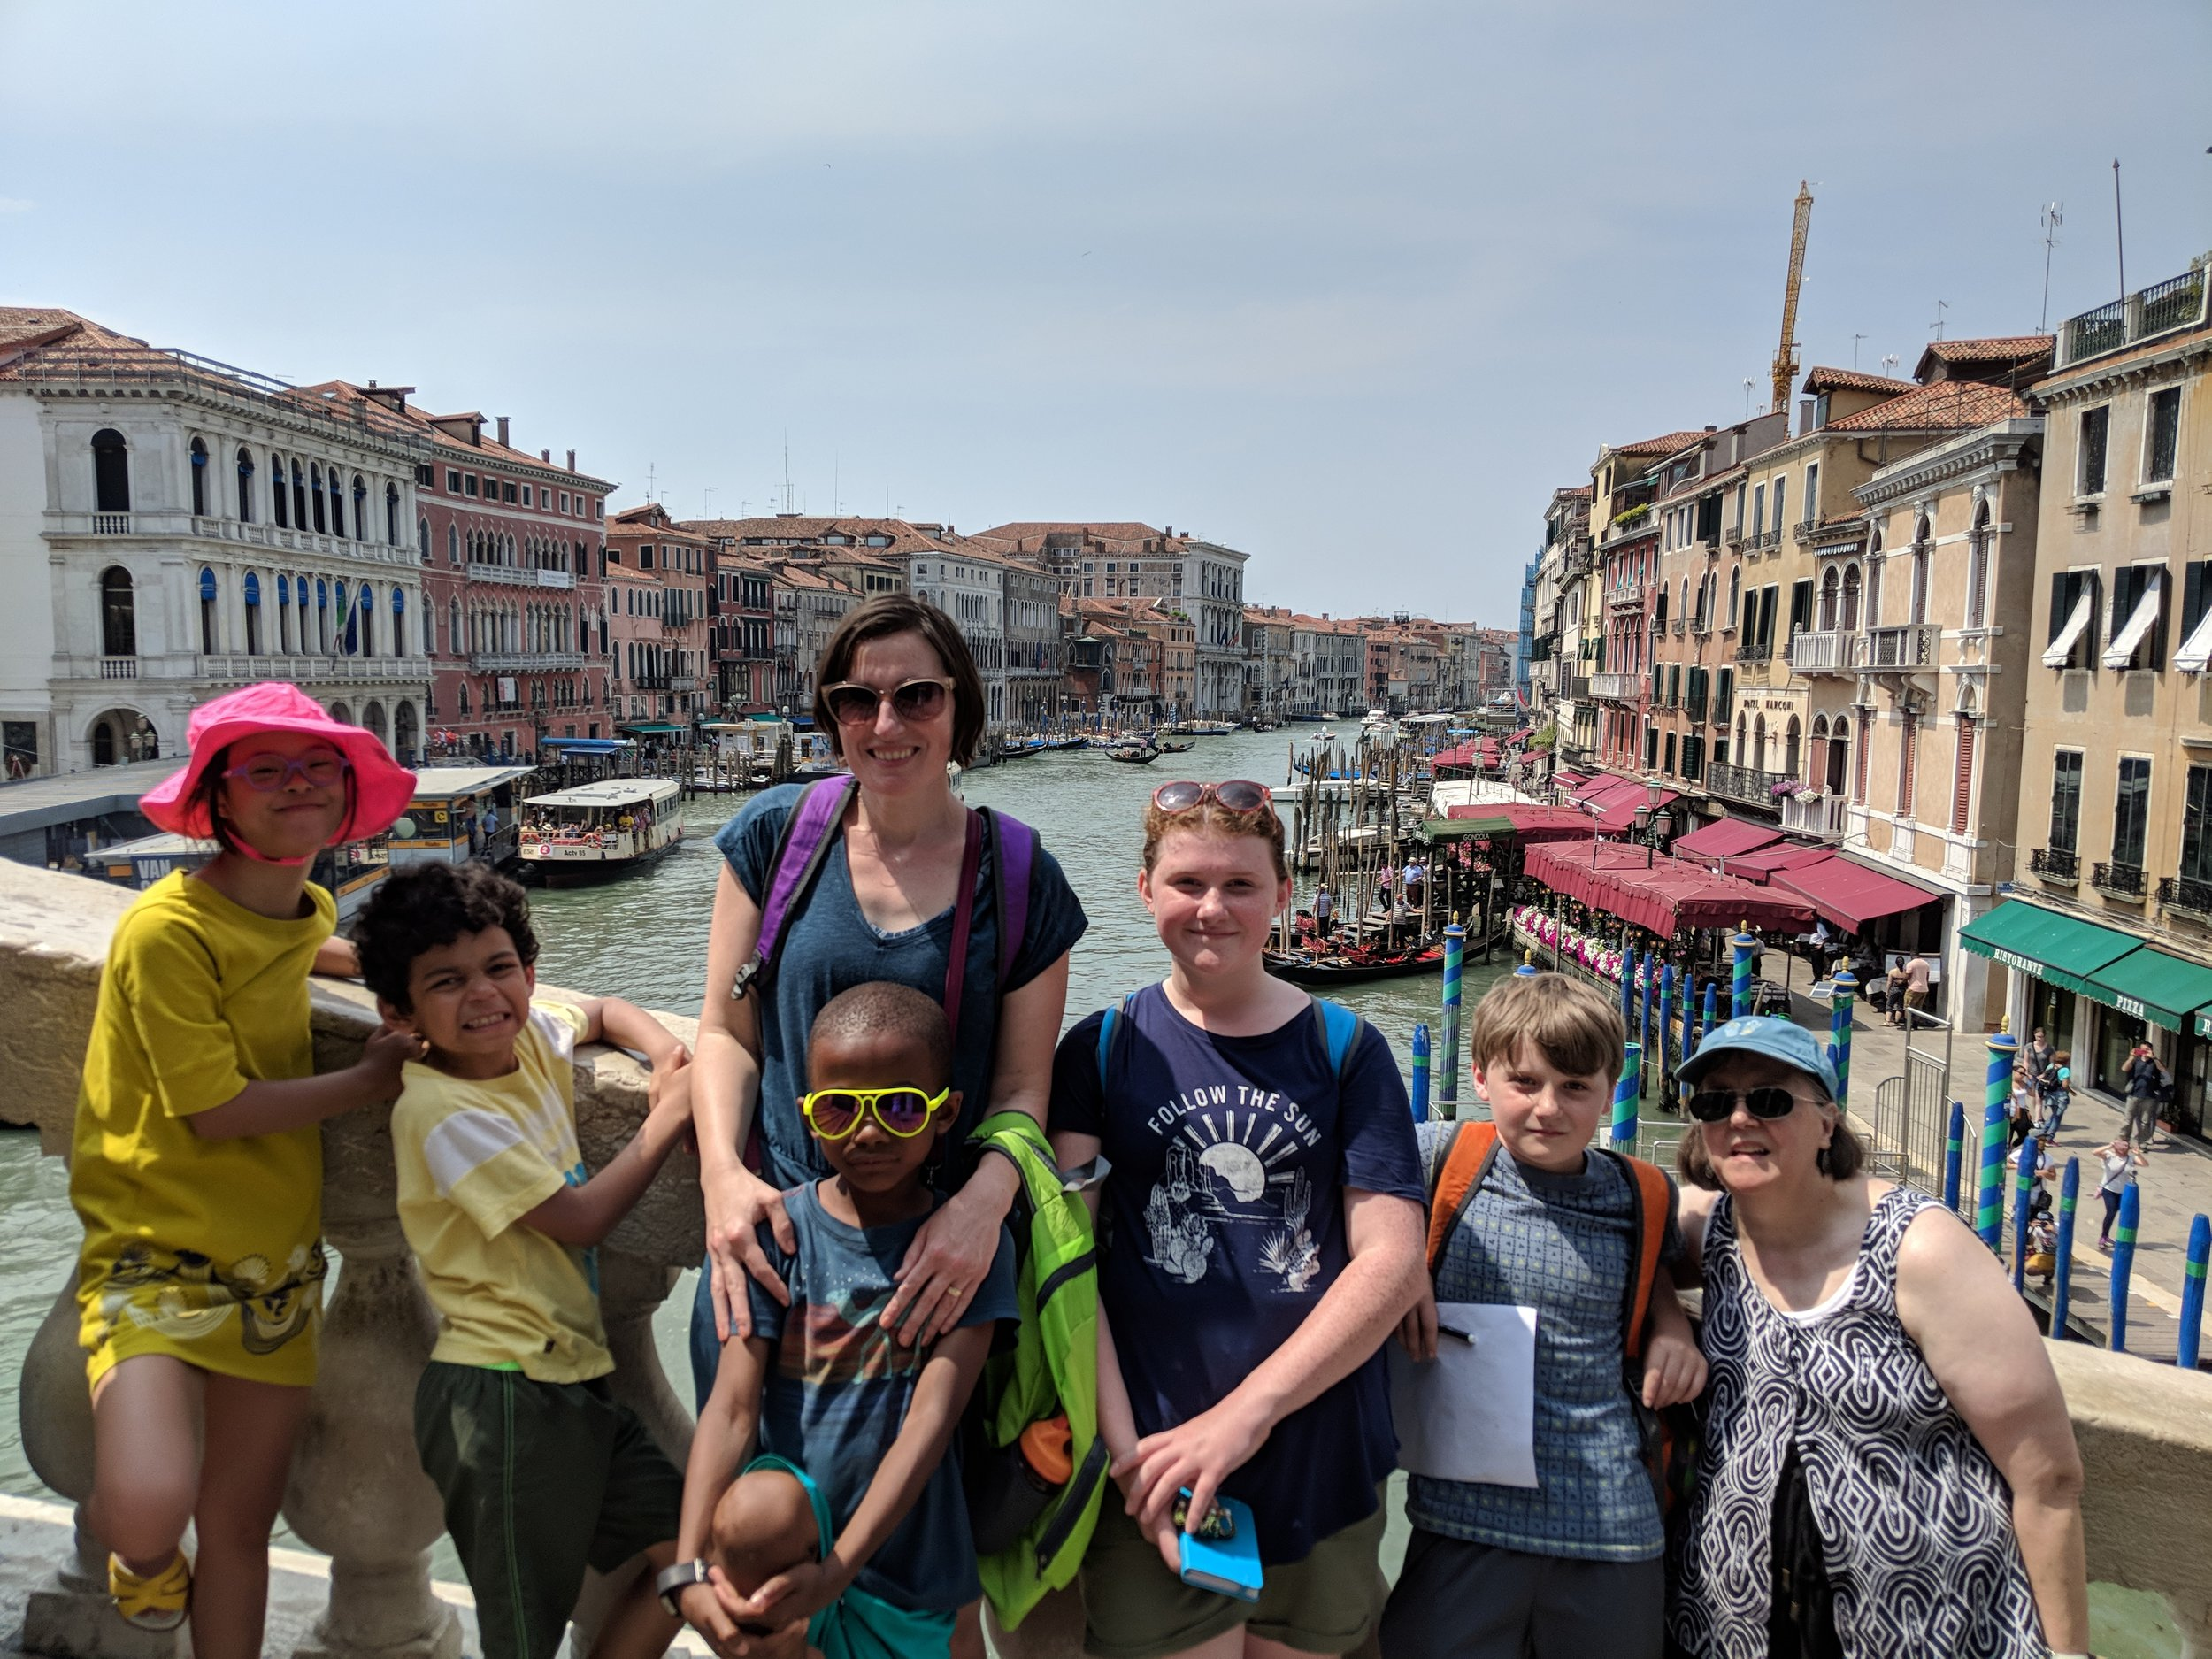 Andie, her kids, and her mom exploring Italy!